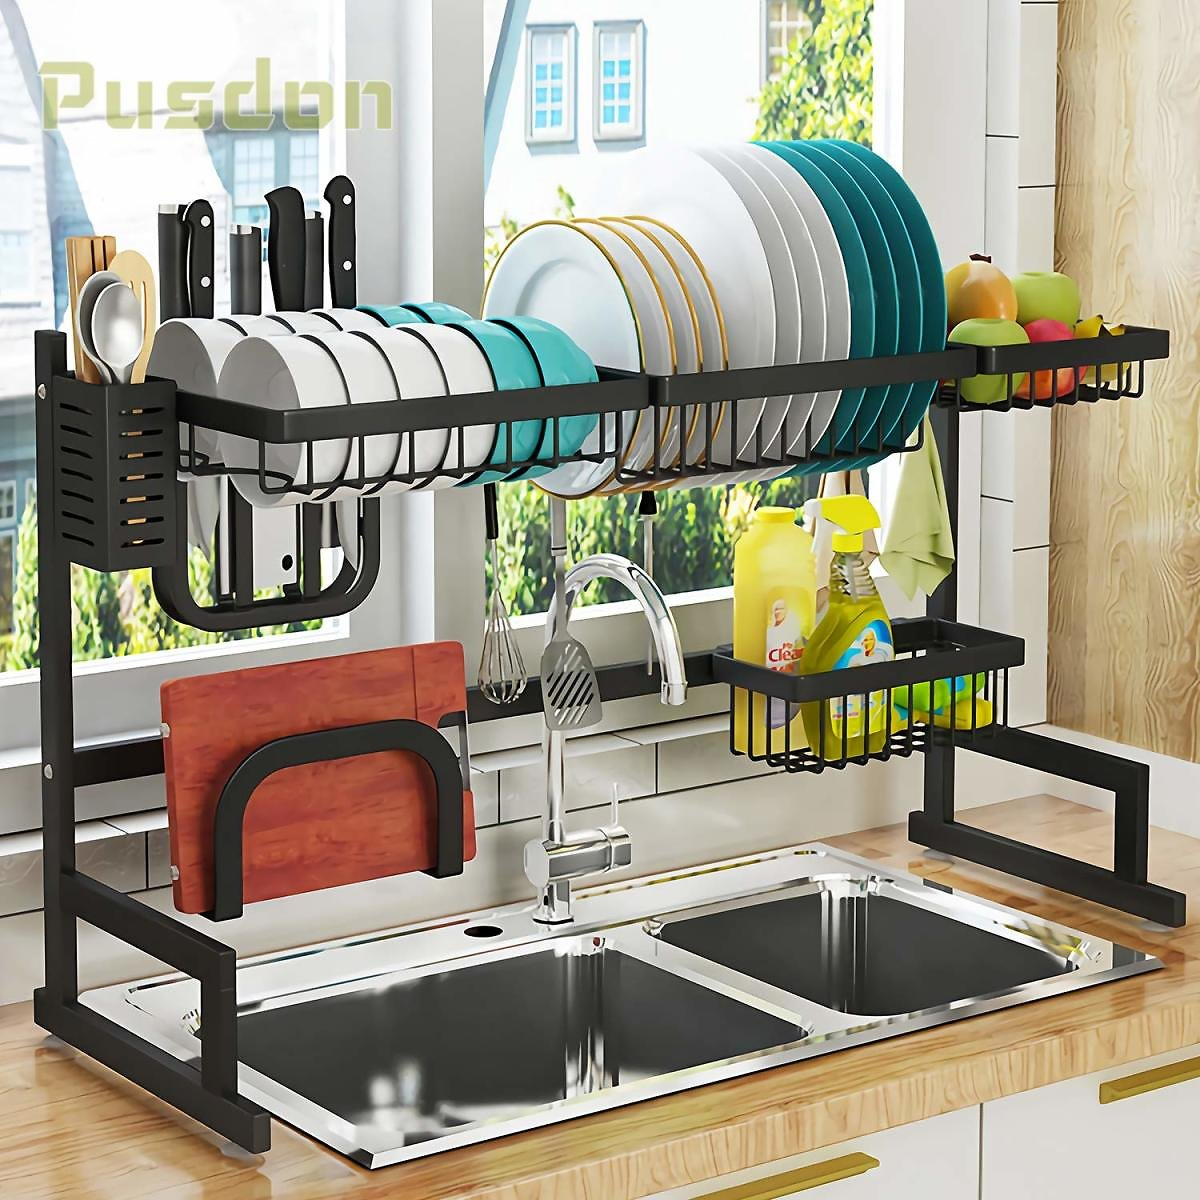 Dish Drying Rack Over Sink, Drainer Shelf for Kitchen Supplies Storage Counter Organizer Utensils Holder Stainless Steel Display- Kitchen Space Save Must Have